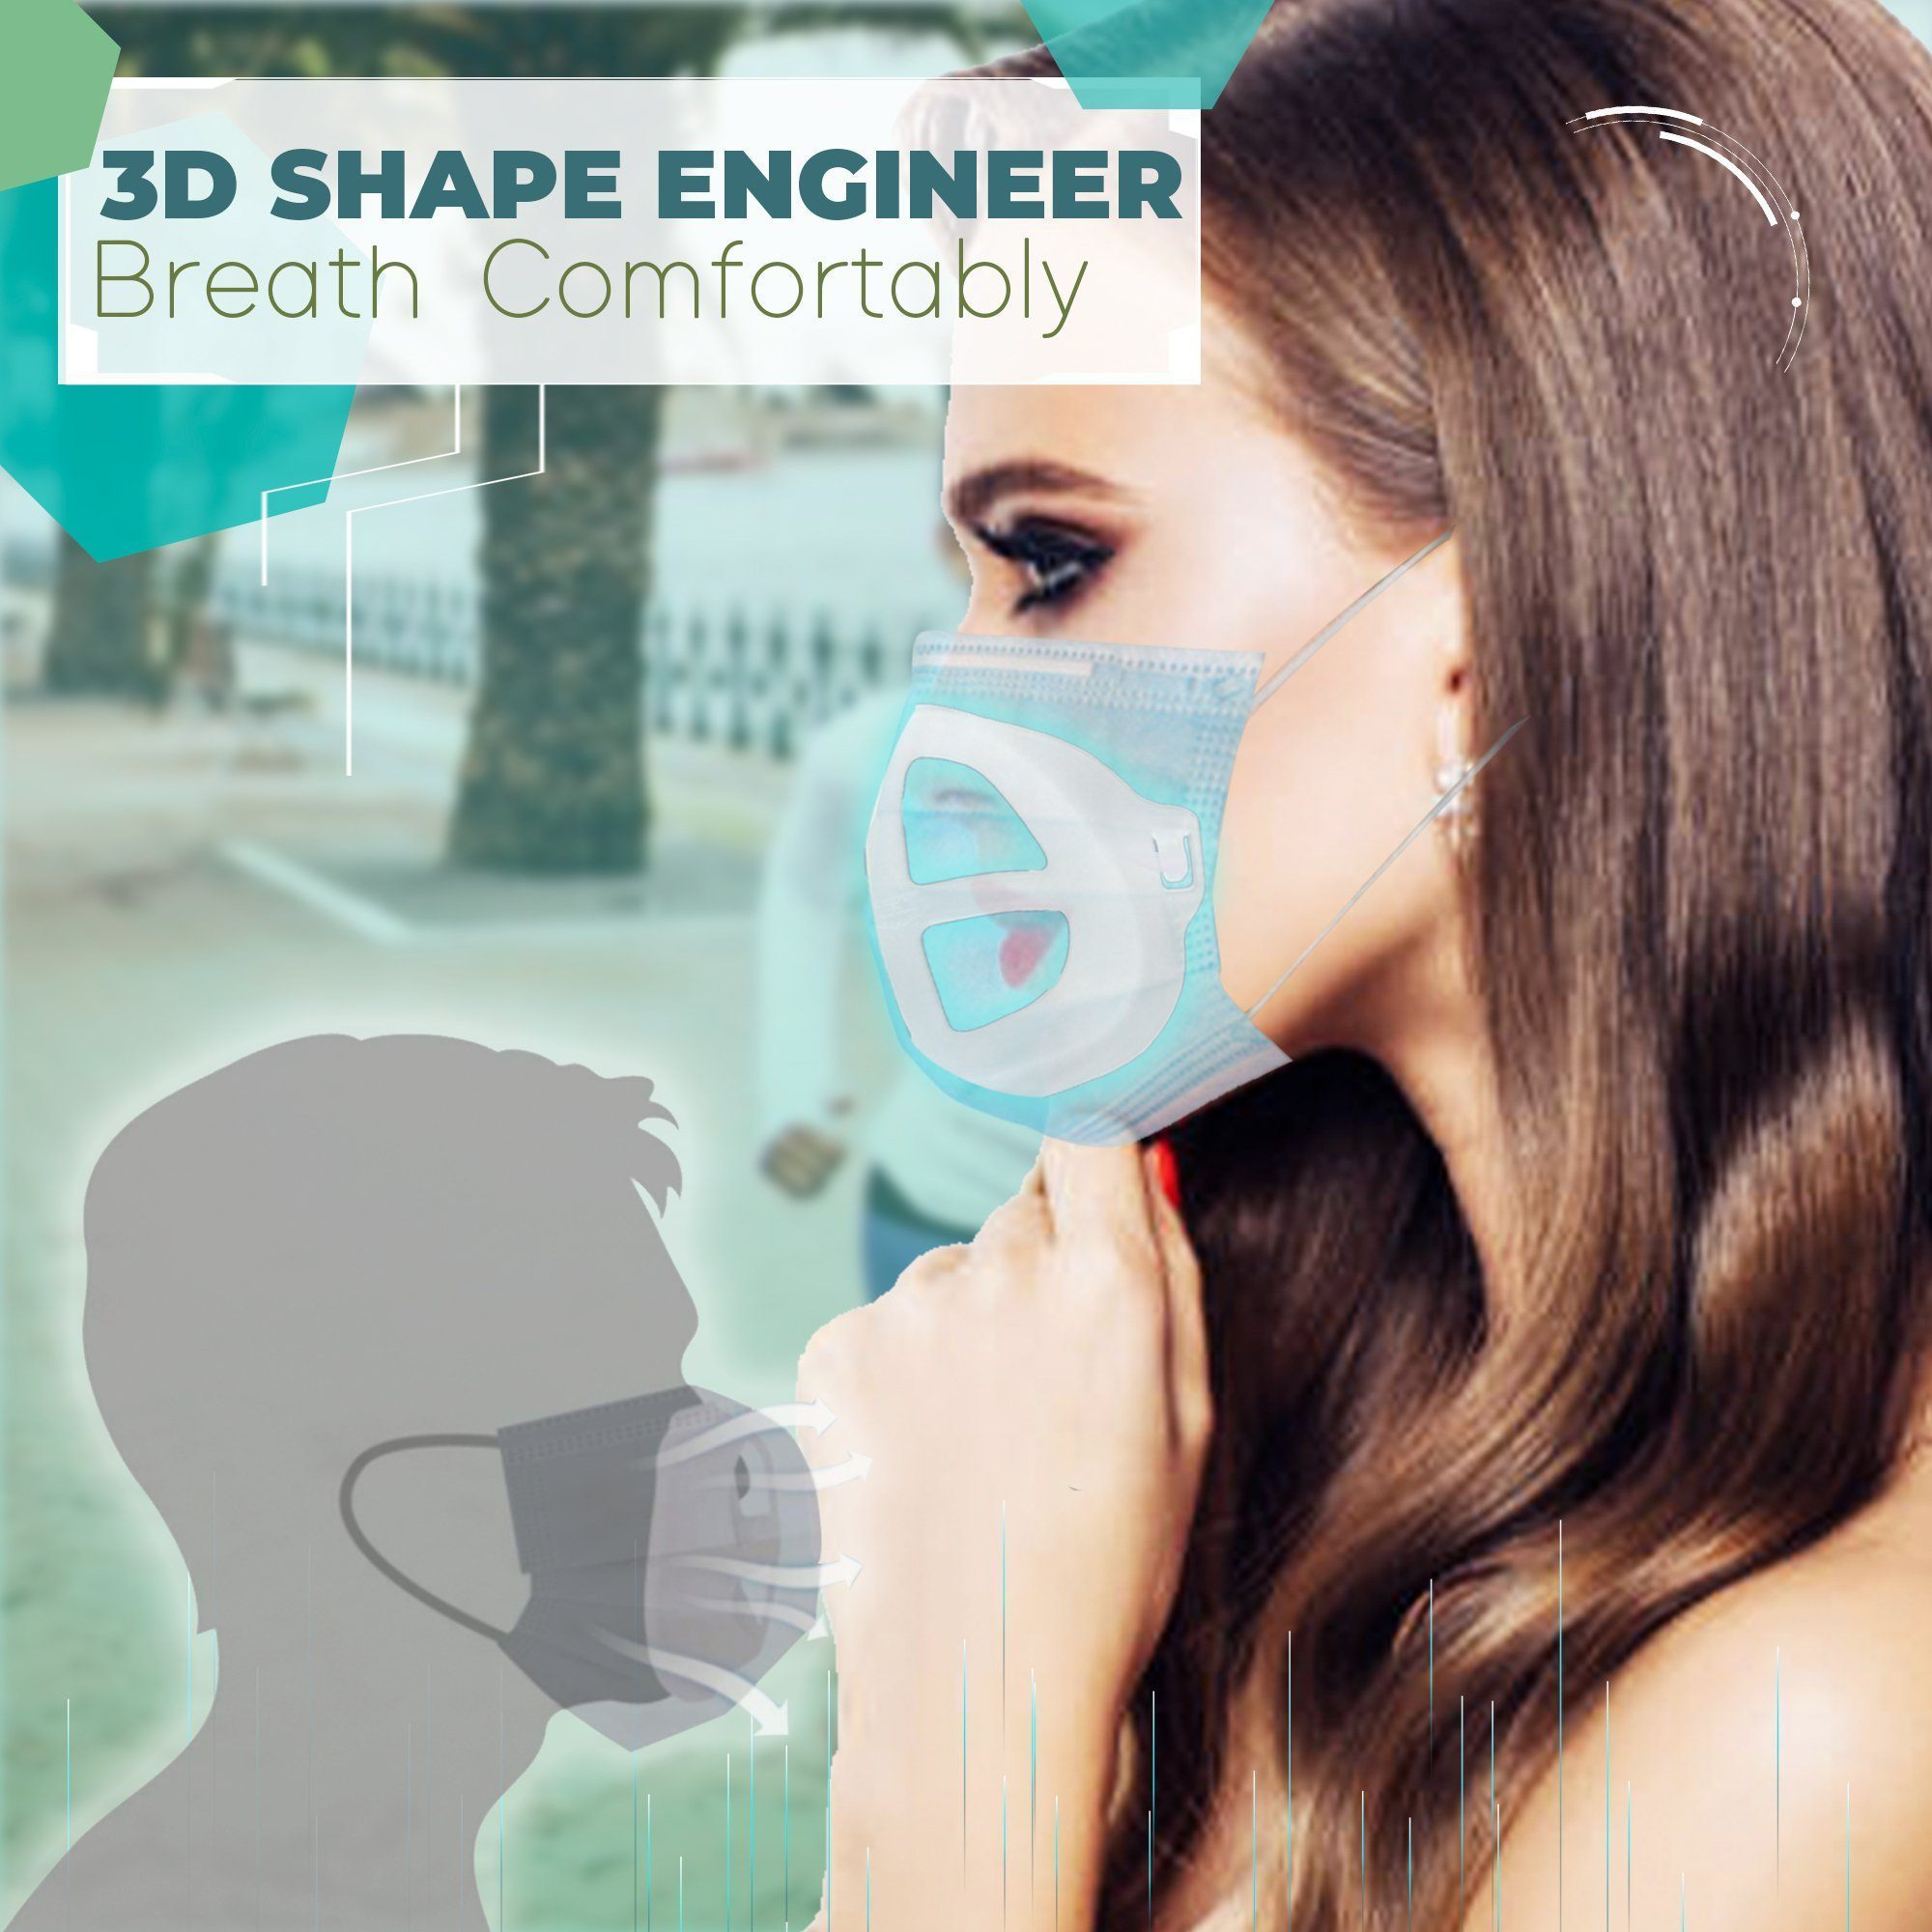 3D Breath Support